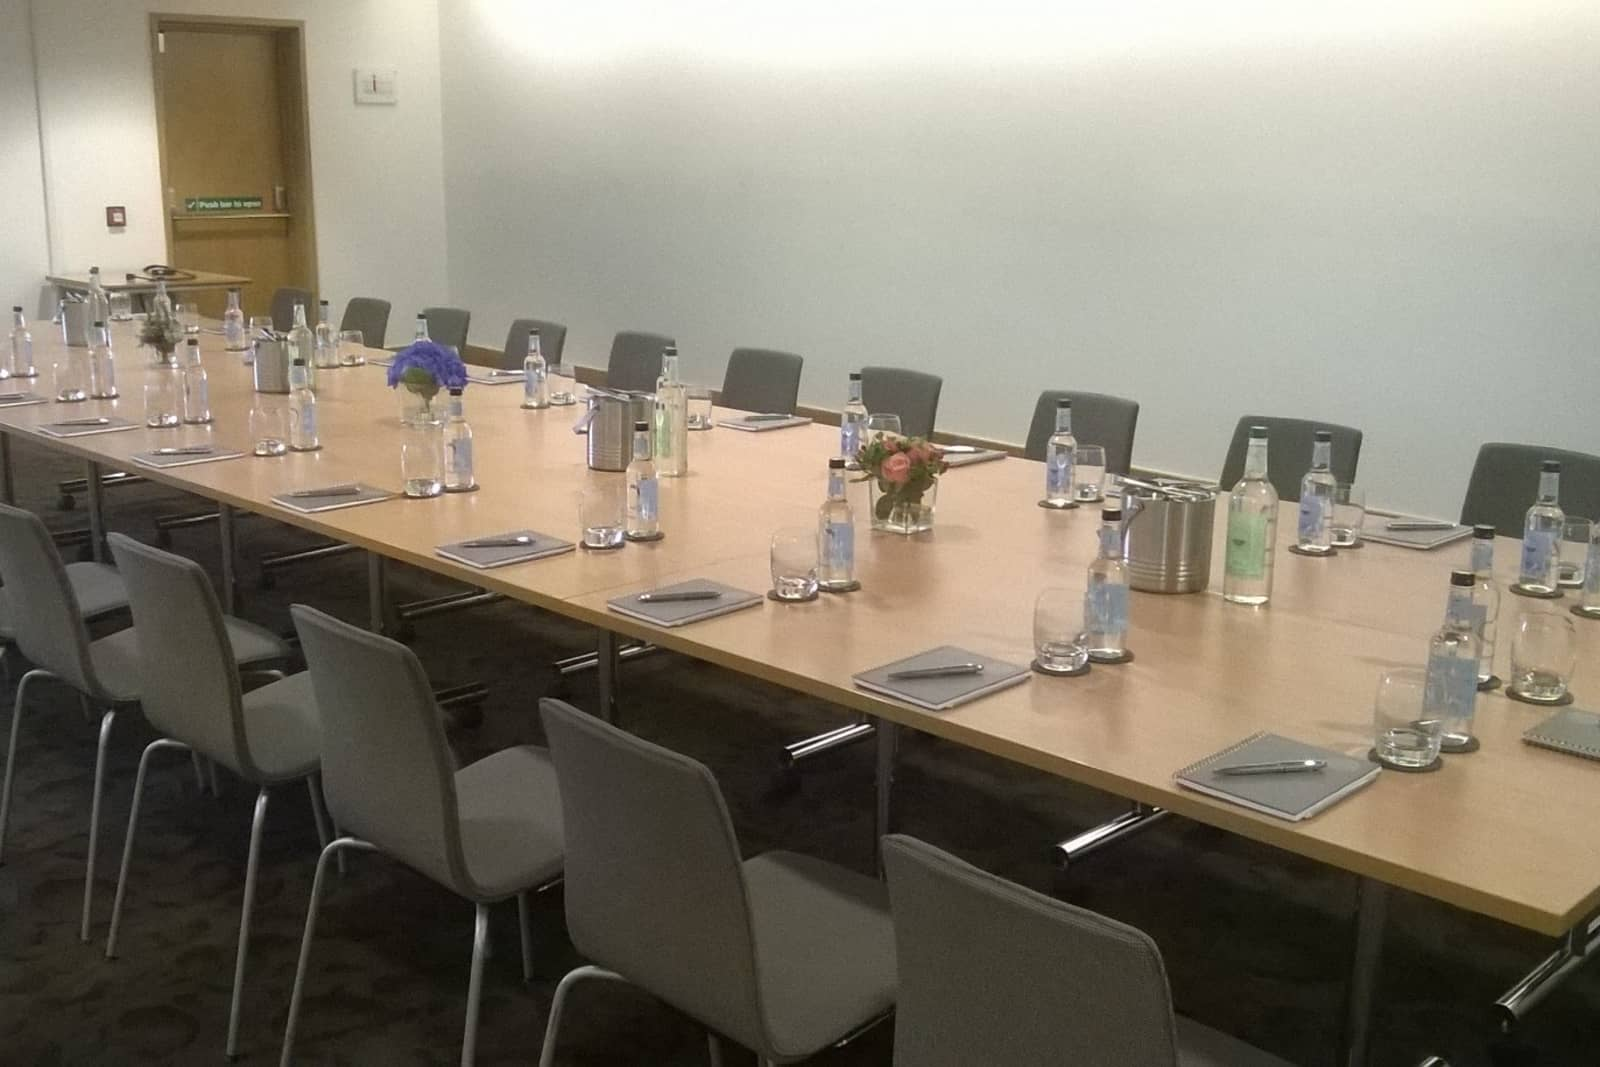 Boardroom style layout